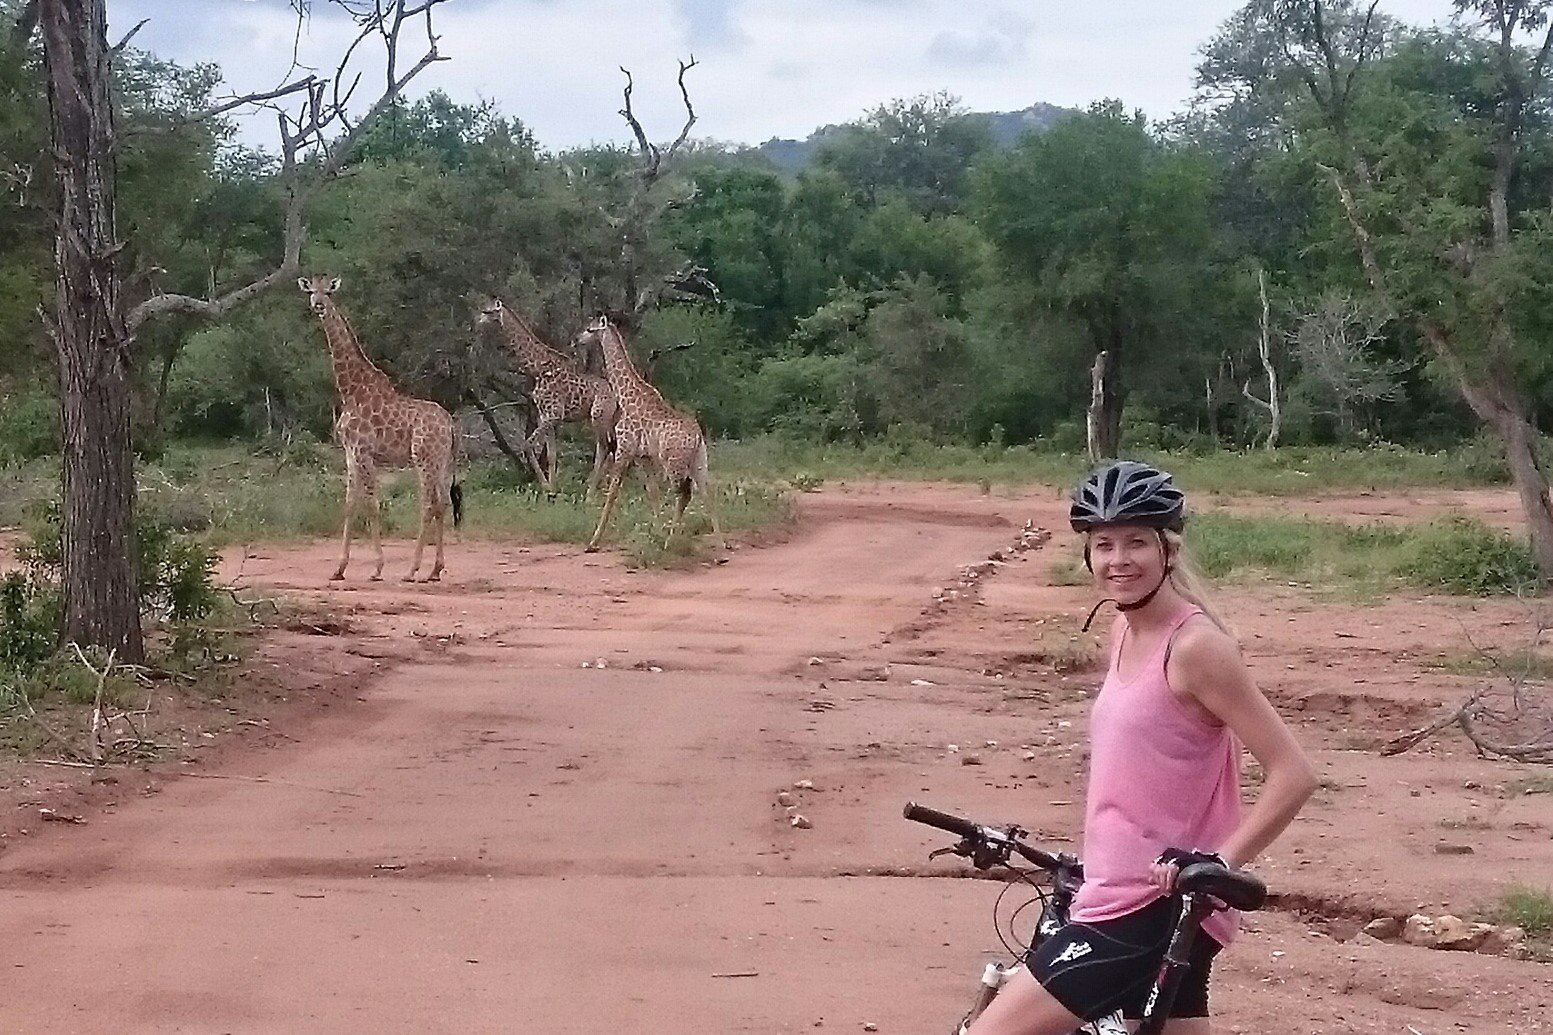 Safari Cycling with giraffes